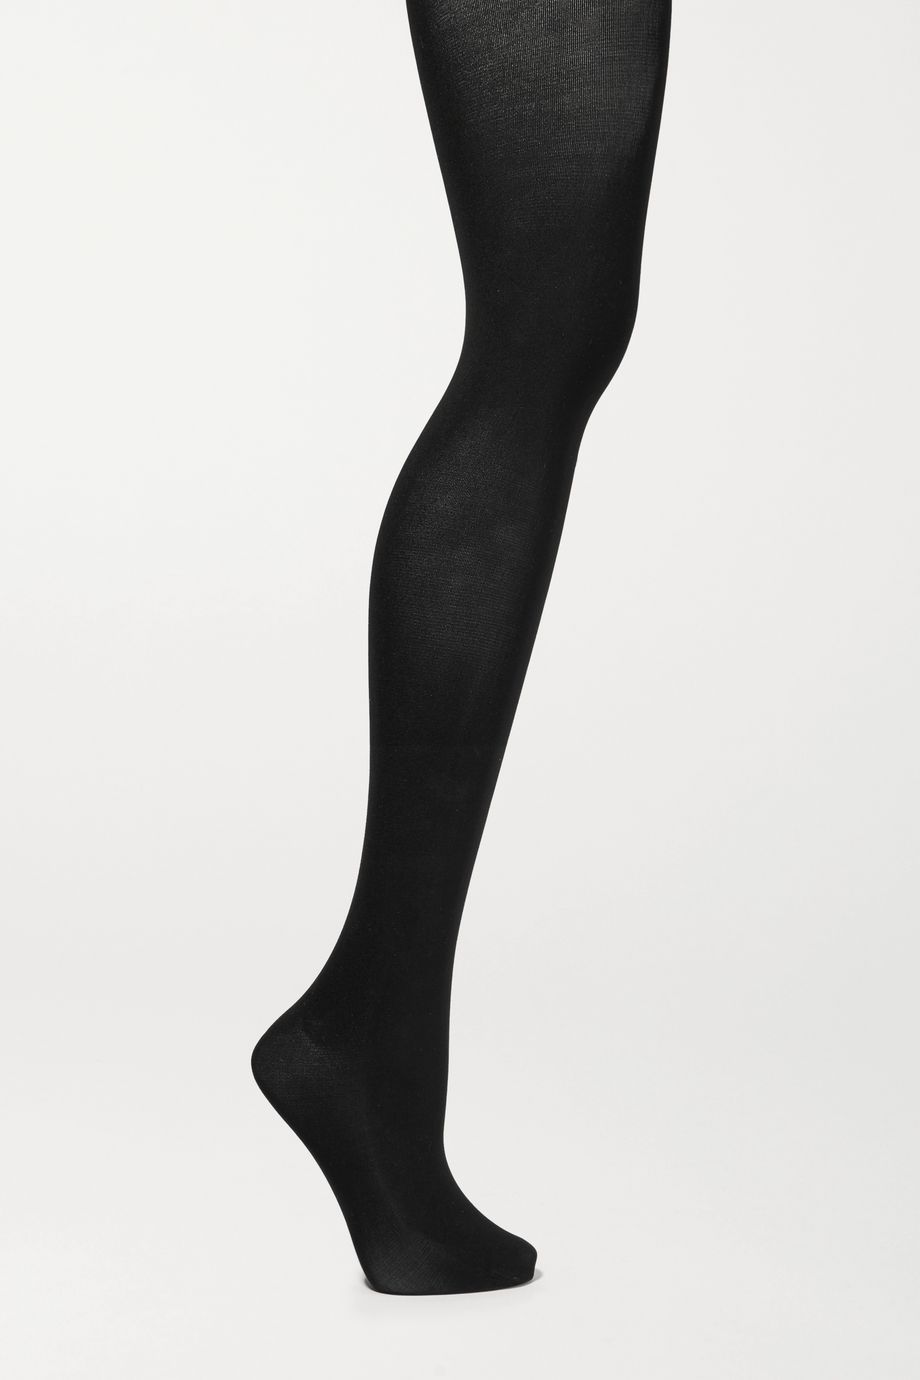 Commando Ultimate Opaque 70 denier tights